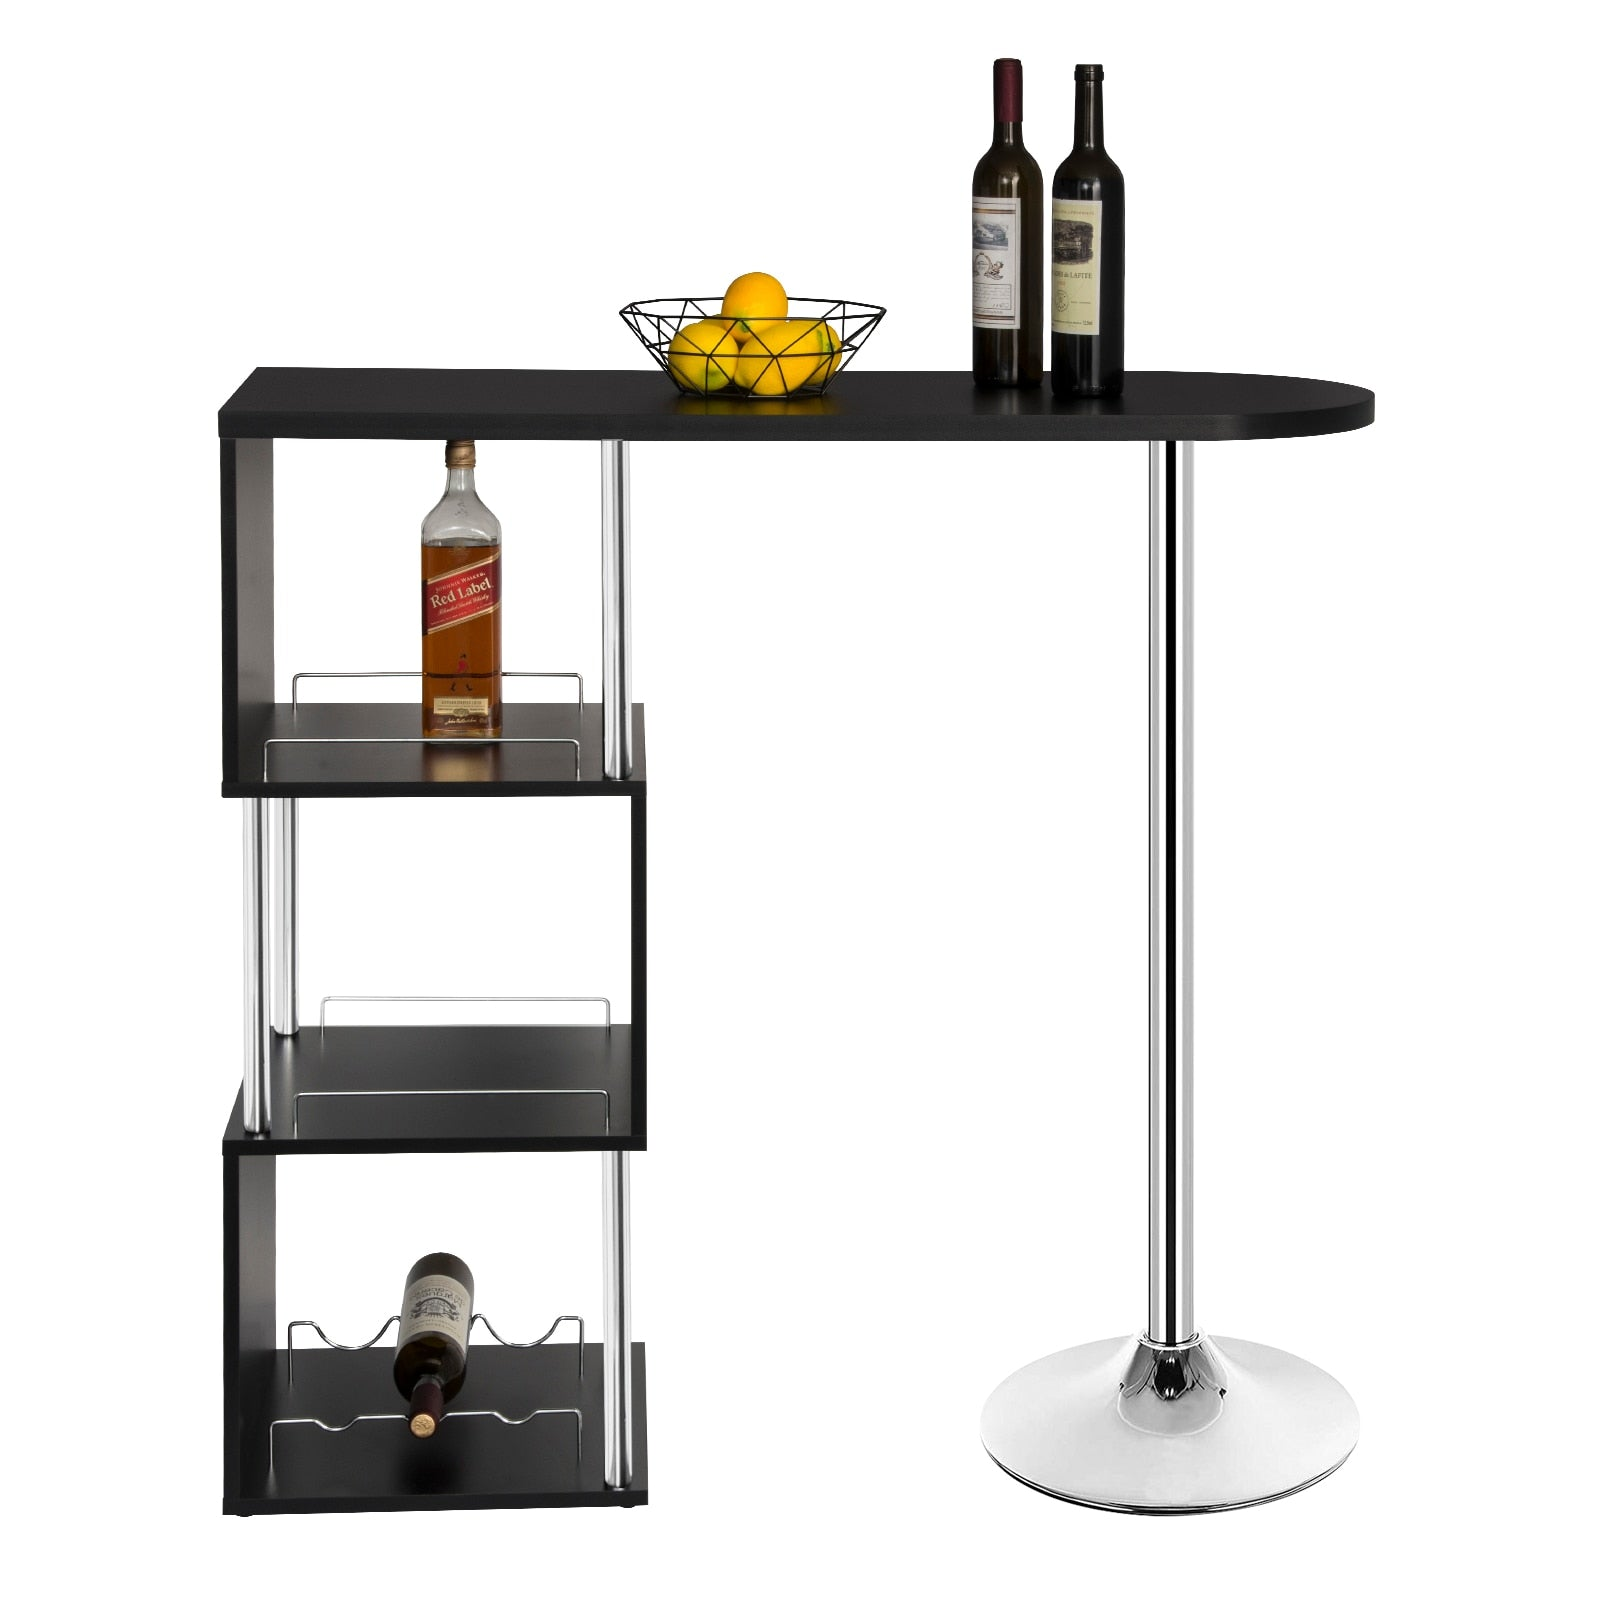 1PC Kitchen Bar Table Bistro Breakfast Dining Table Coffee Table with 3-Tier Storage Shelves for Beverage Display  Space Divider - Vintageretrostyle